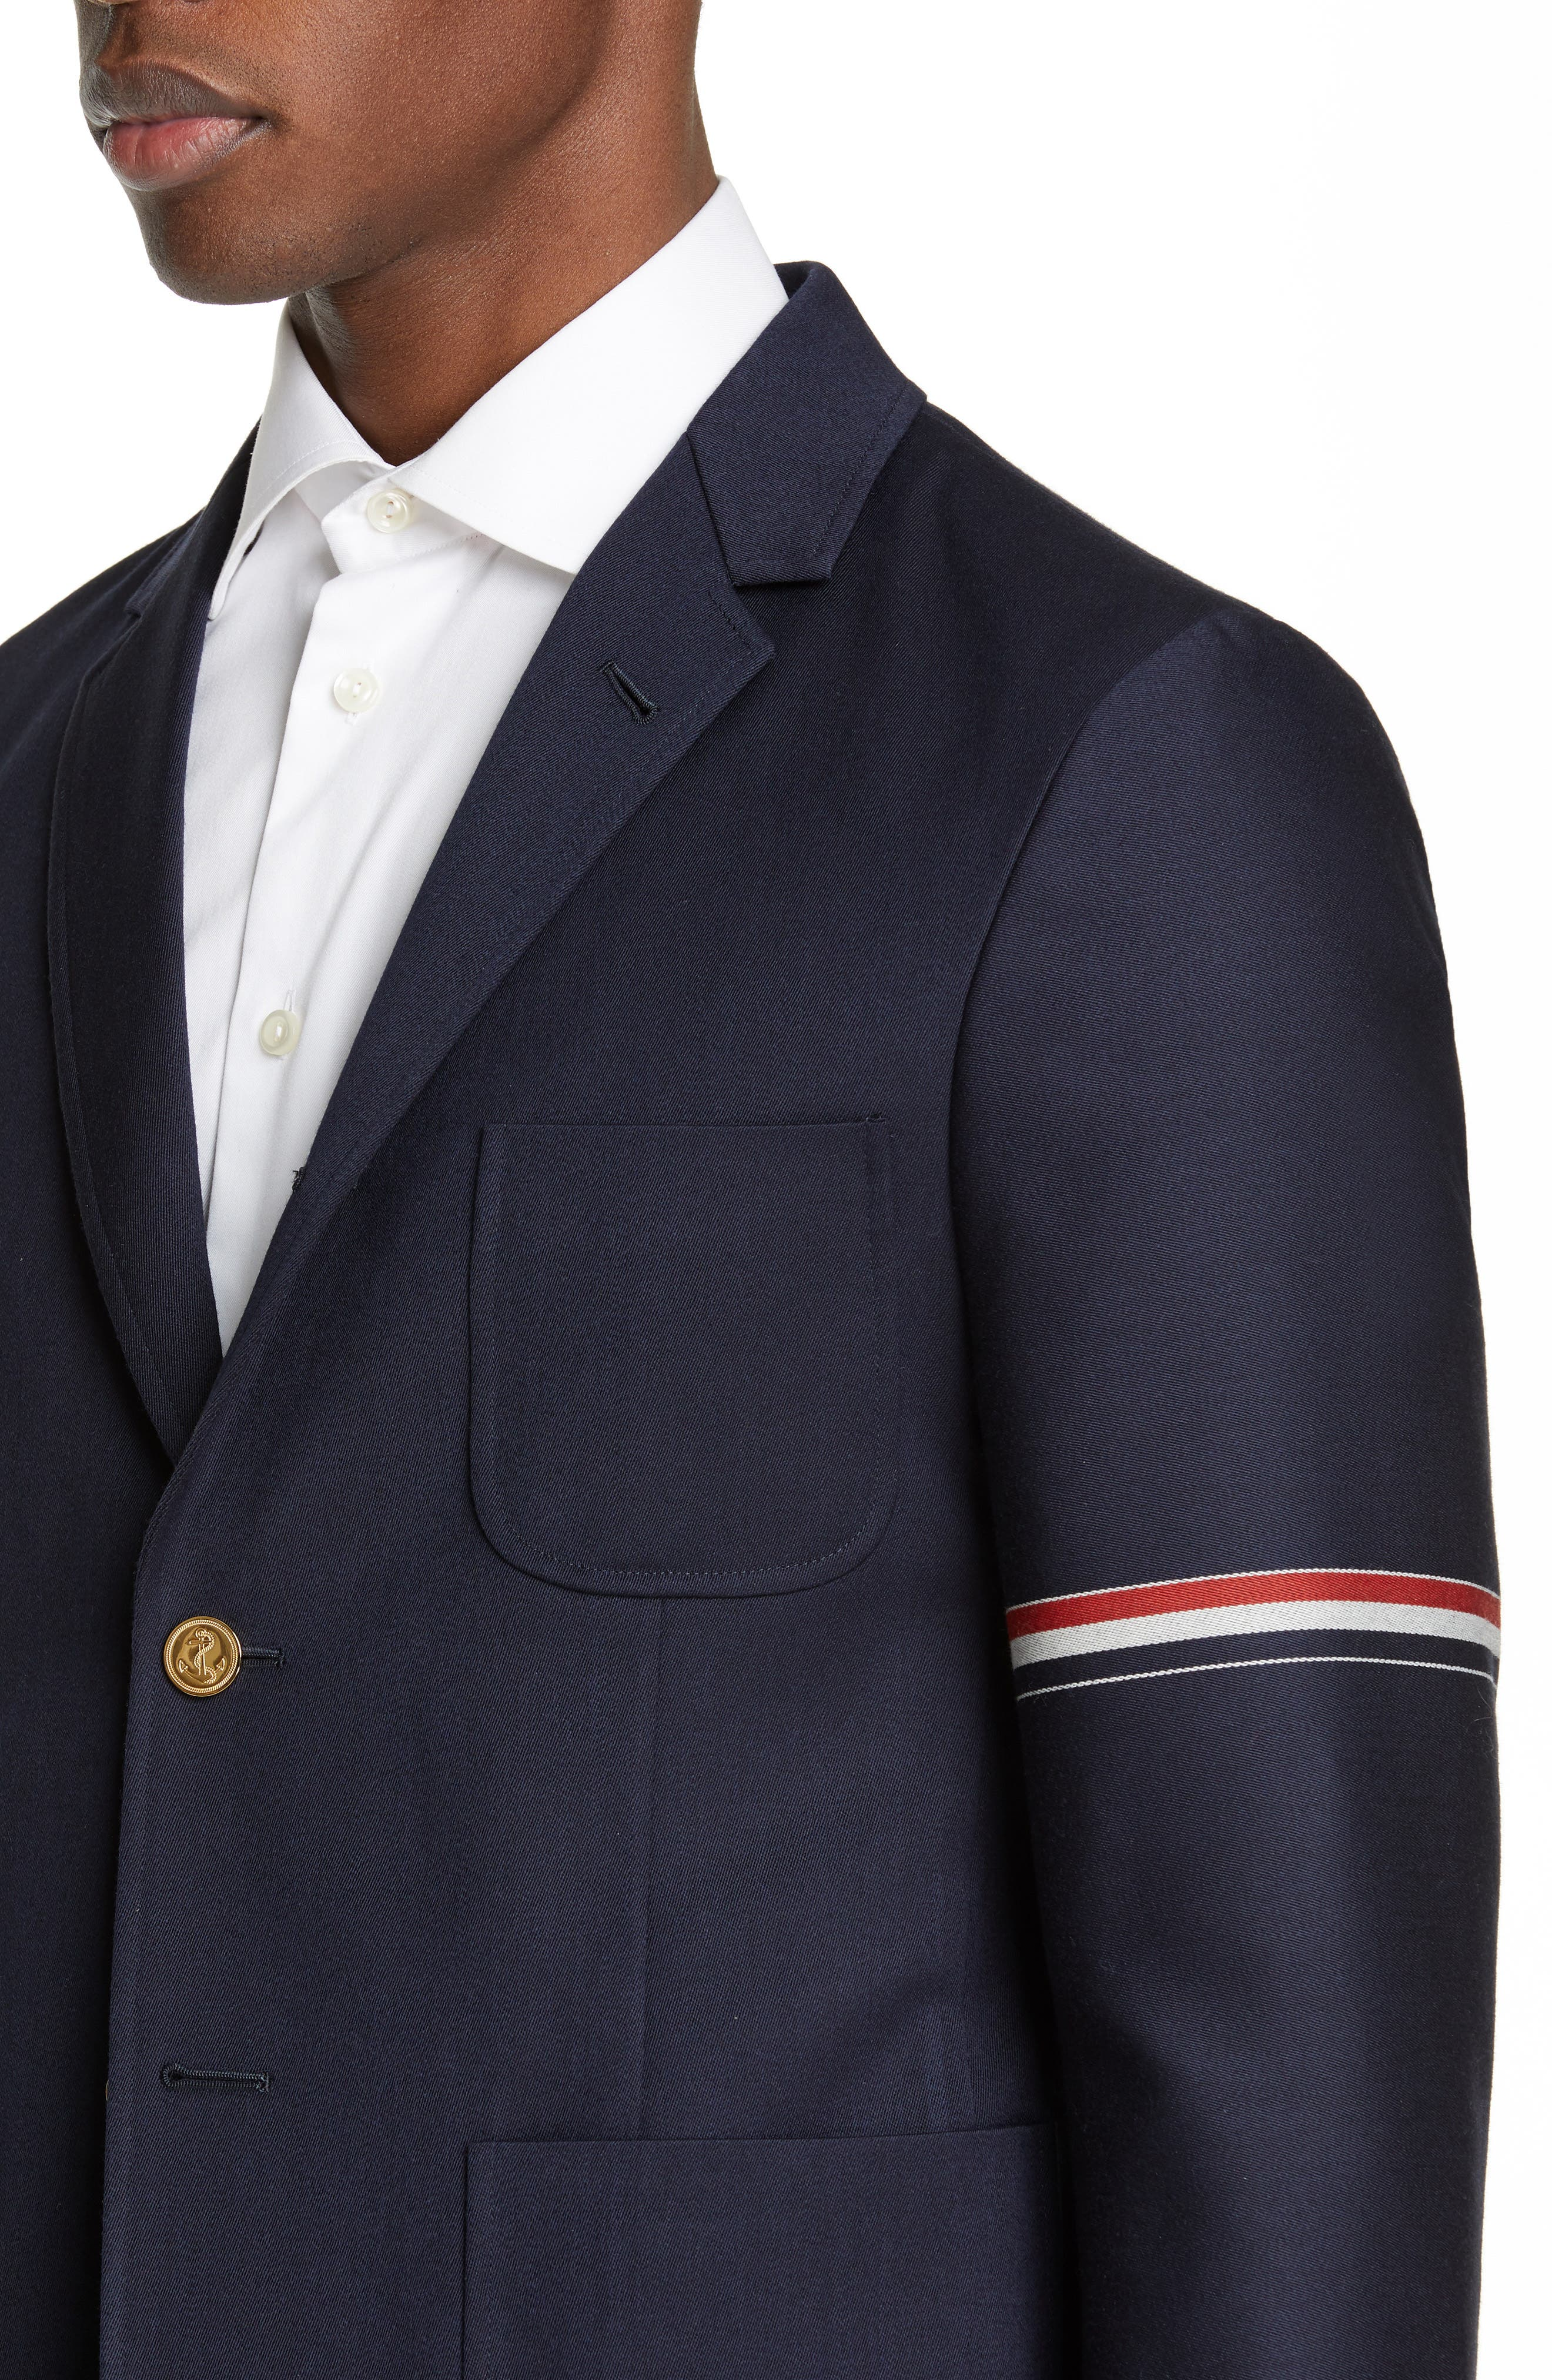 Unconstructed Wool Blend Sport Coat,                             Alternate thumbnail 4, color,                             NAVY